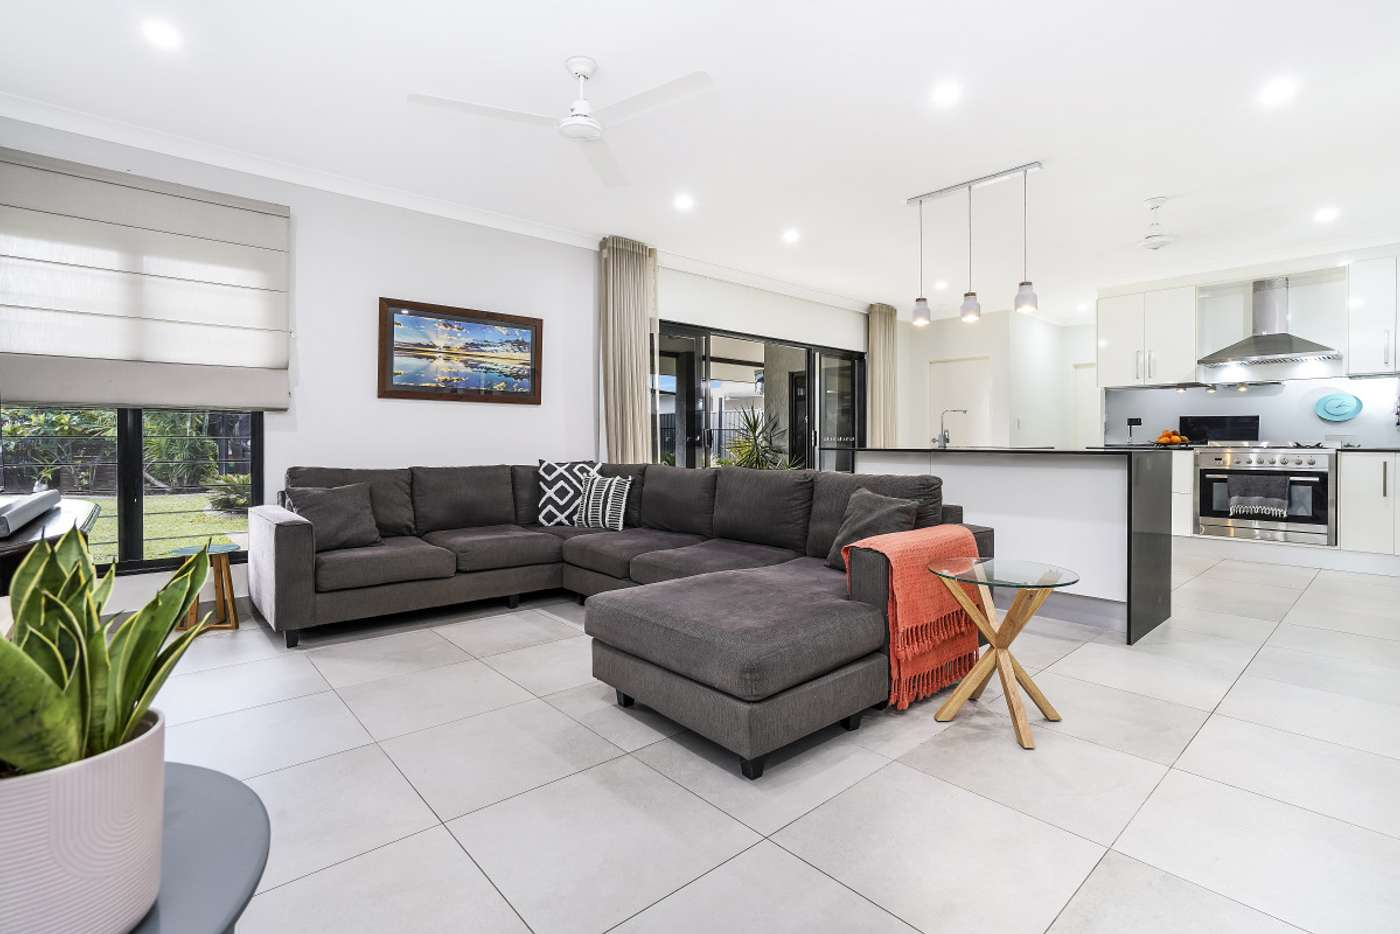 Main view of Homely house listing, 15 Donovan Street, Muirhead NT 810